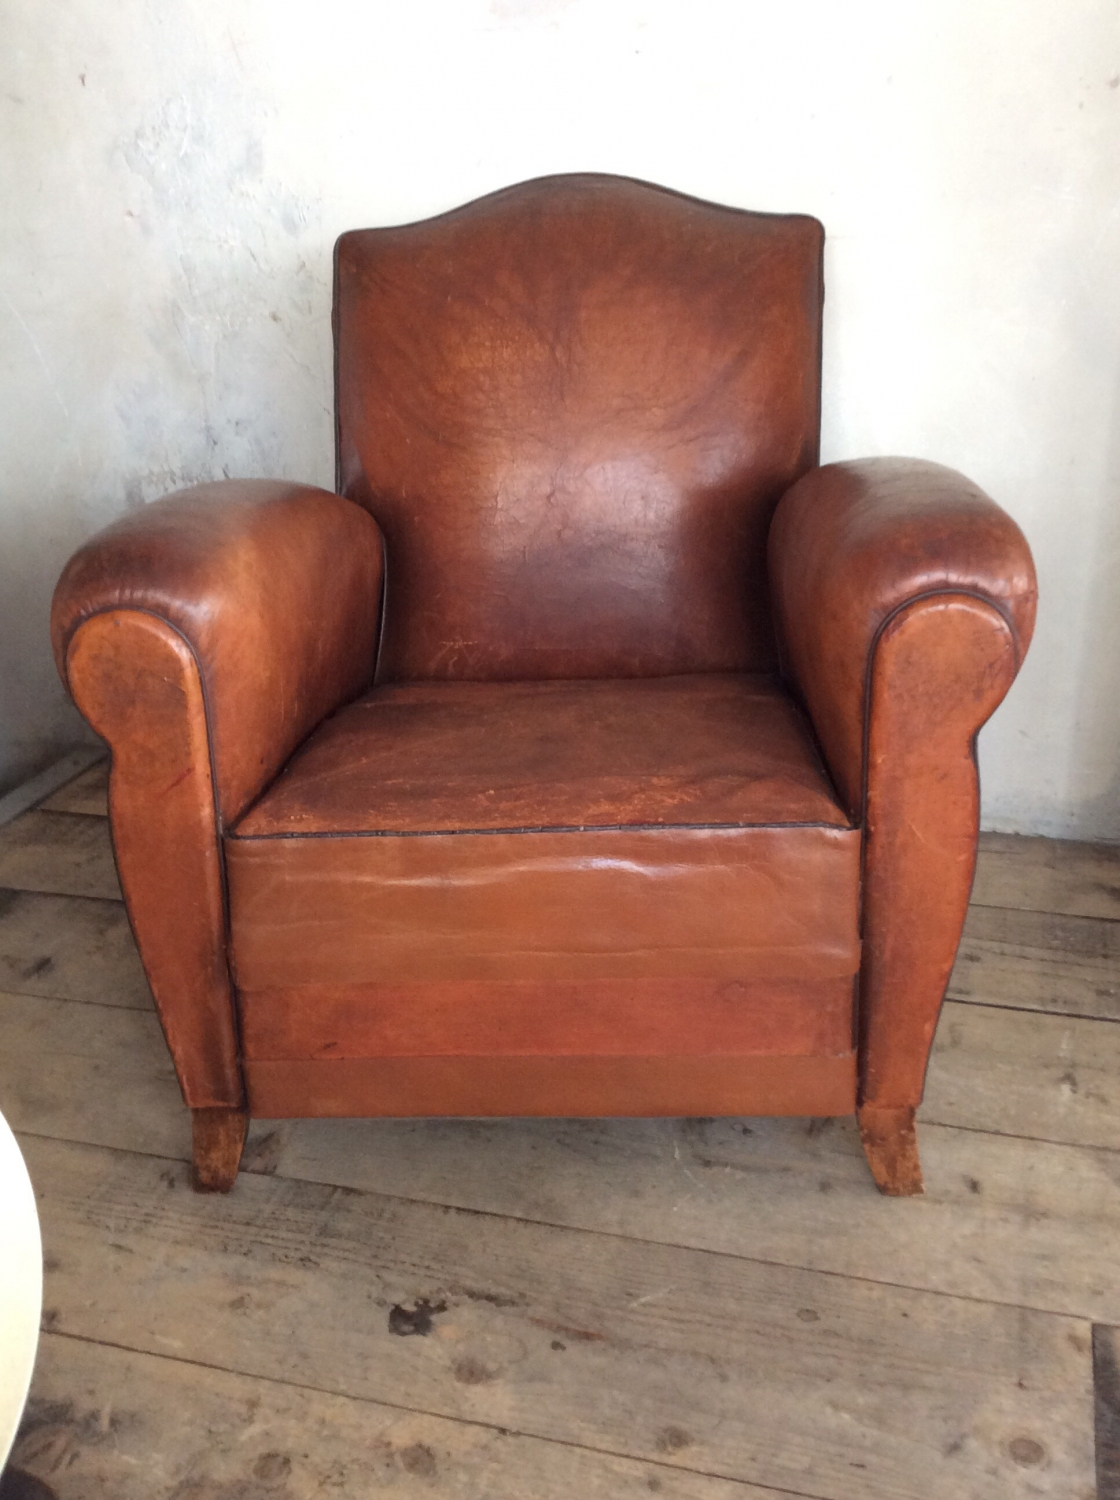 Lovely French Club chair